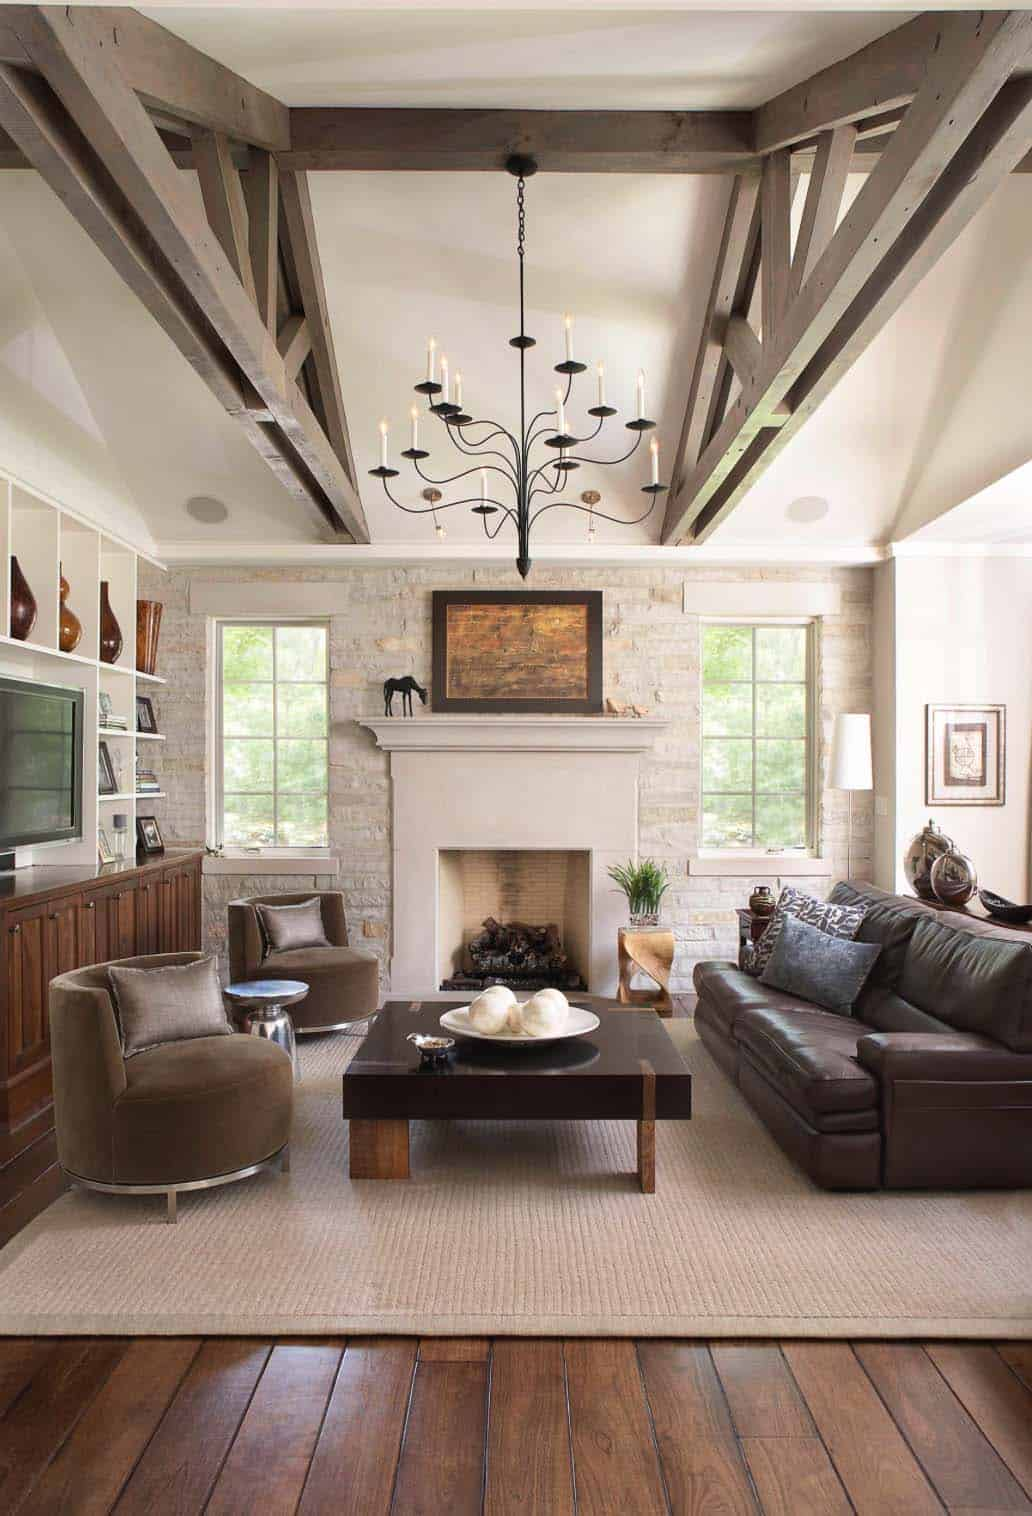 Interior Living Spaces-Exposed Ceiling Trusses-15-1 Kindesign